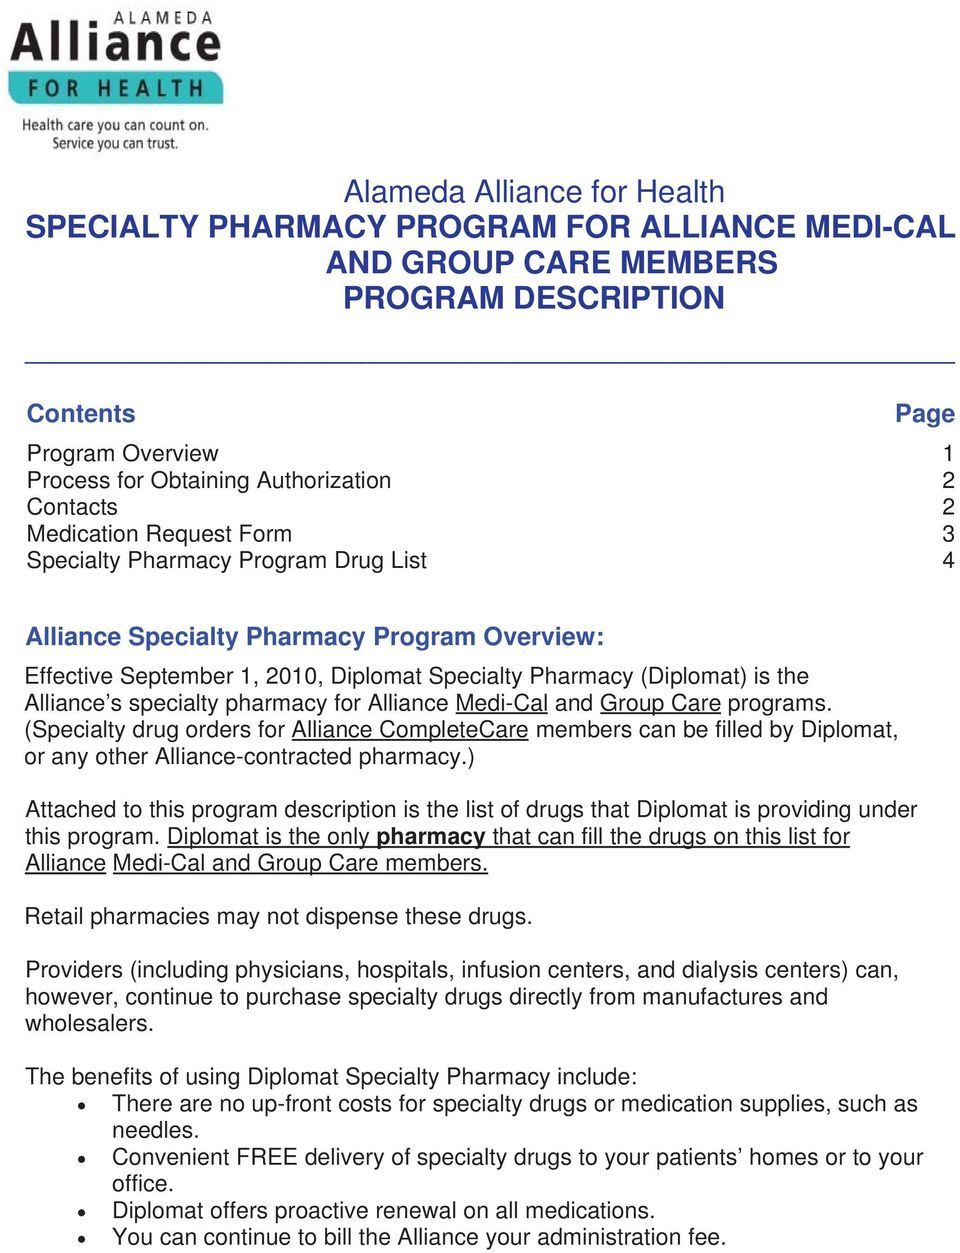 specialty pharmacy for Alliance Medi-Cal and Group Care programs. (Specialty drug orders for Alliance CompleteCare members can be filled by Diplomat, or any other Alliance-contracted pharmacy.